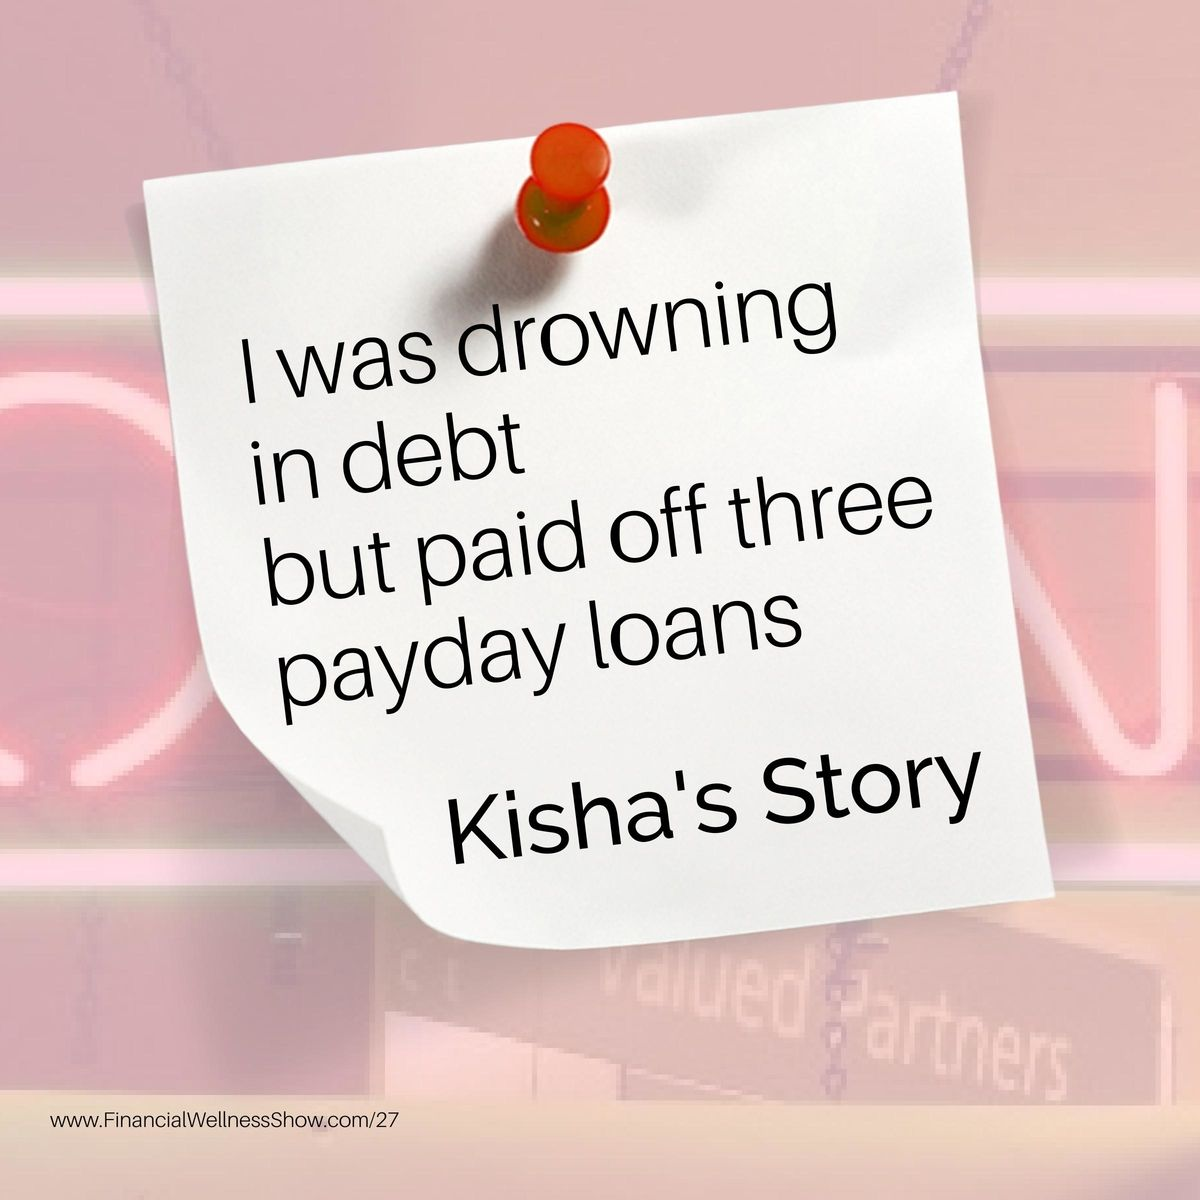 I was drowning in debt but paid off 3 Payday loans